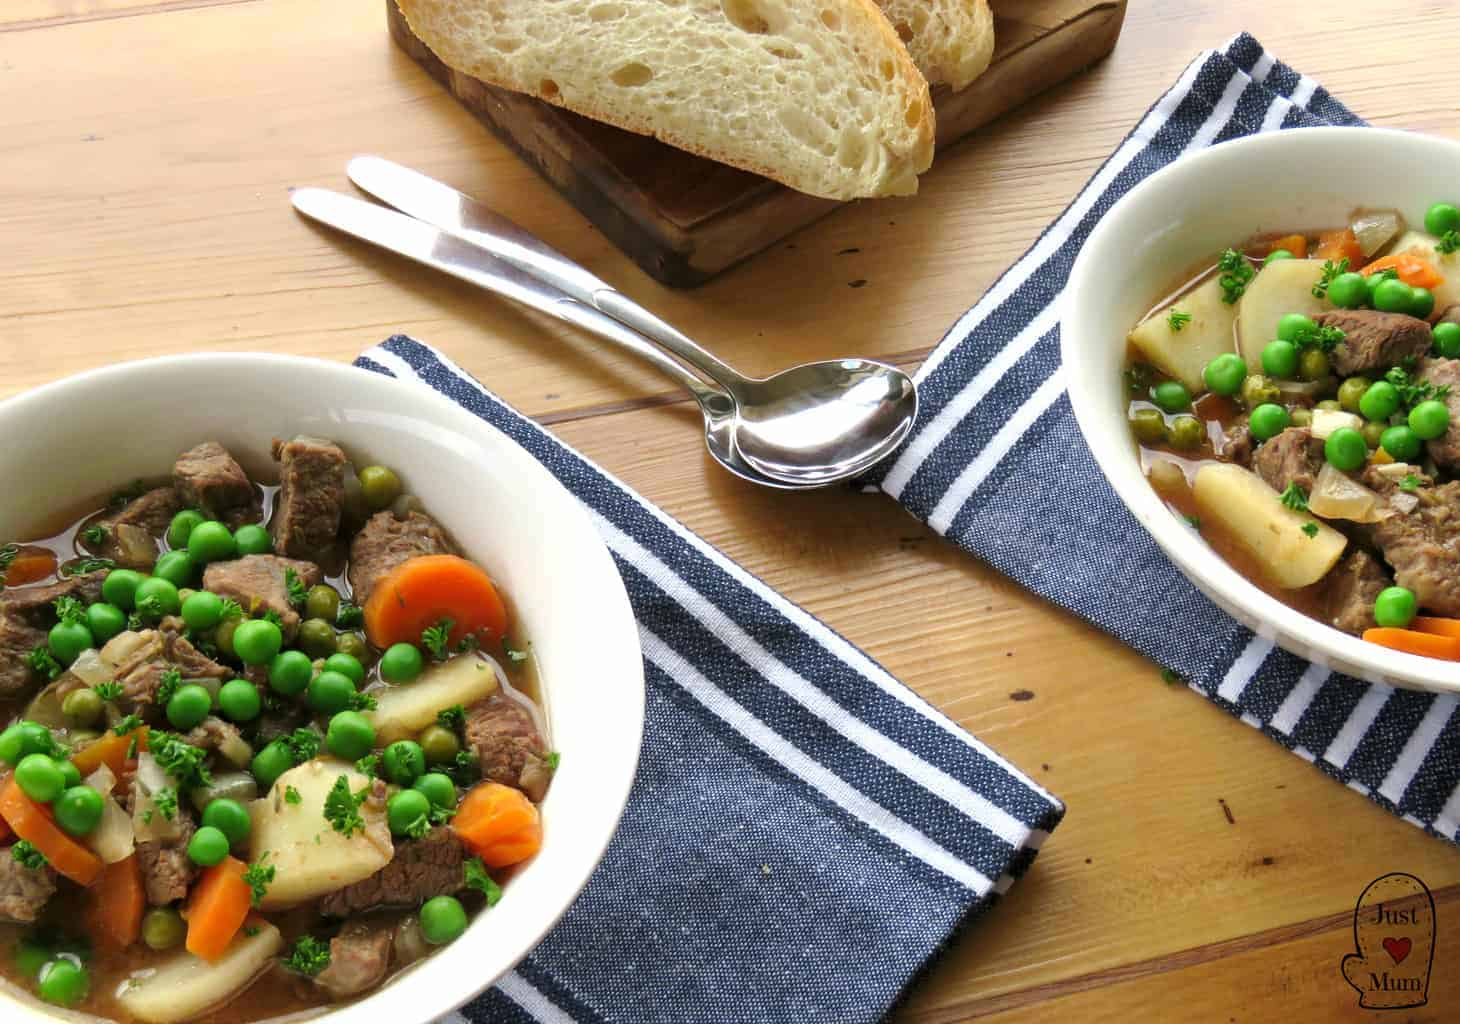 Just A Mum's Irish Stew - How2Food